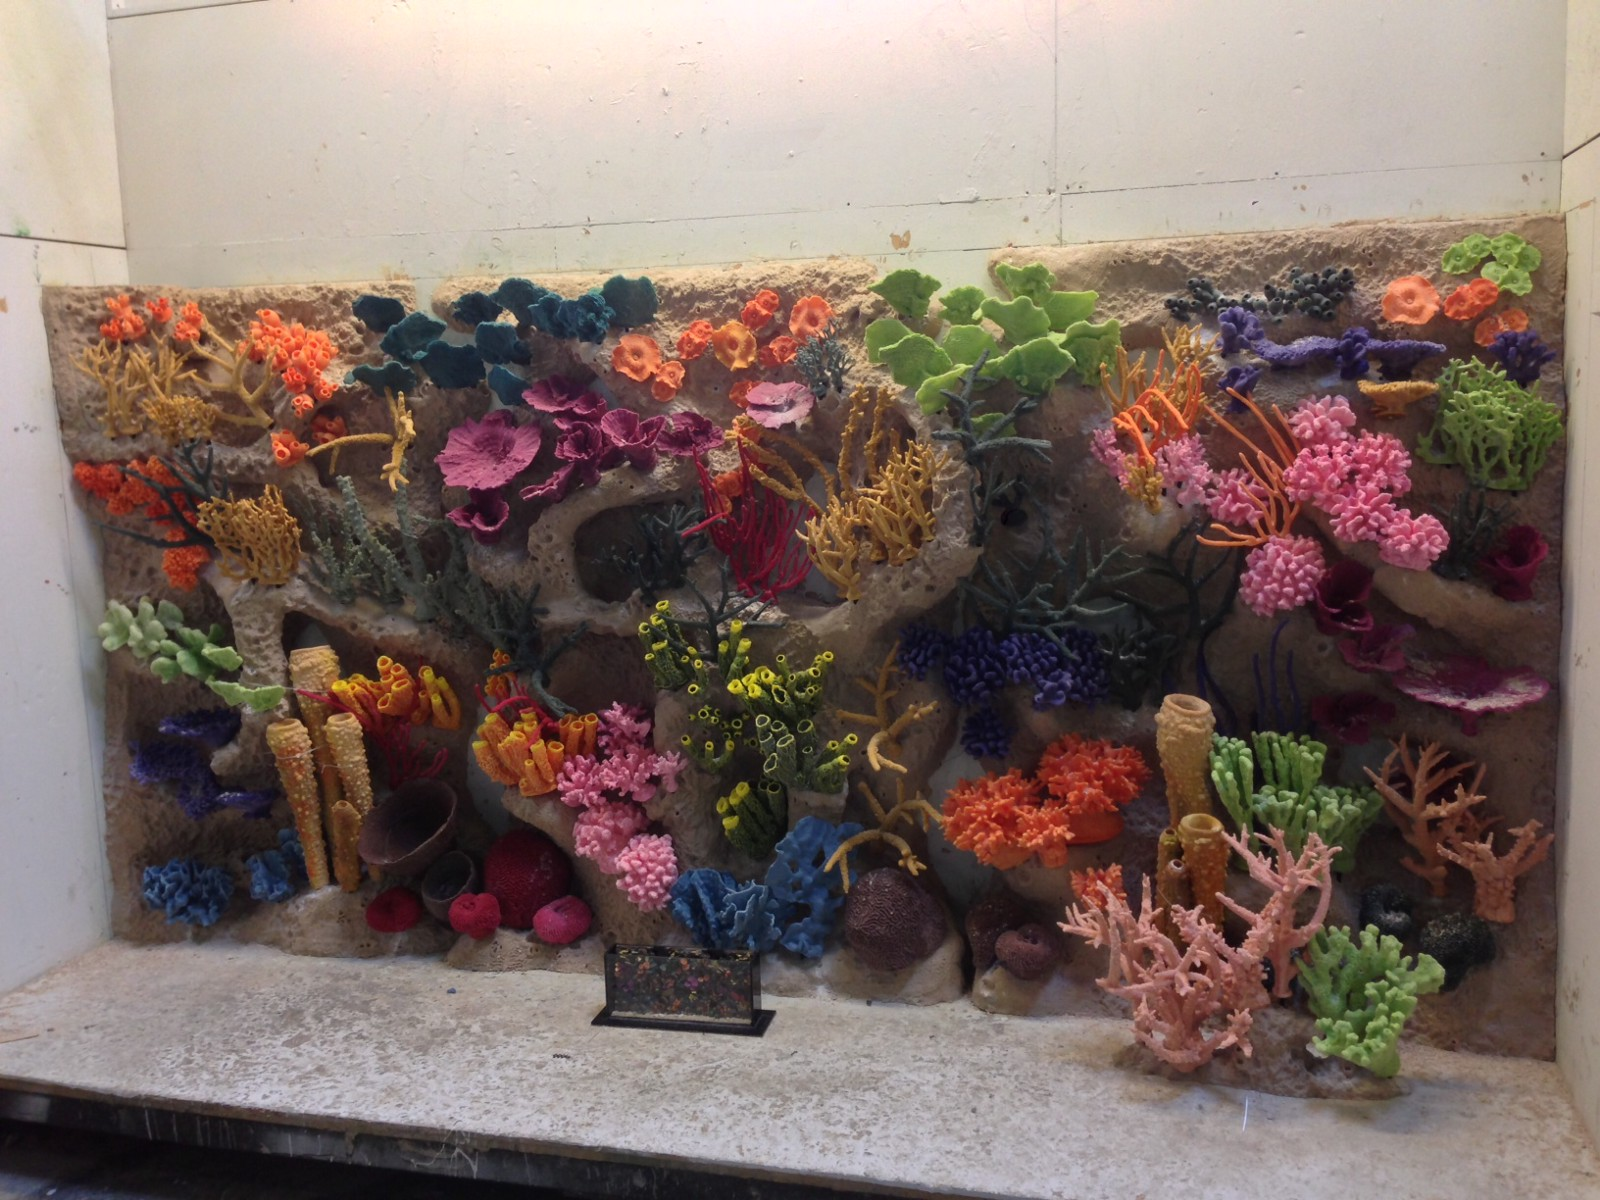 Decorate Your Aquarium With Beautiful Artificial Coral And Reefs